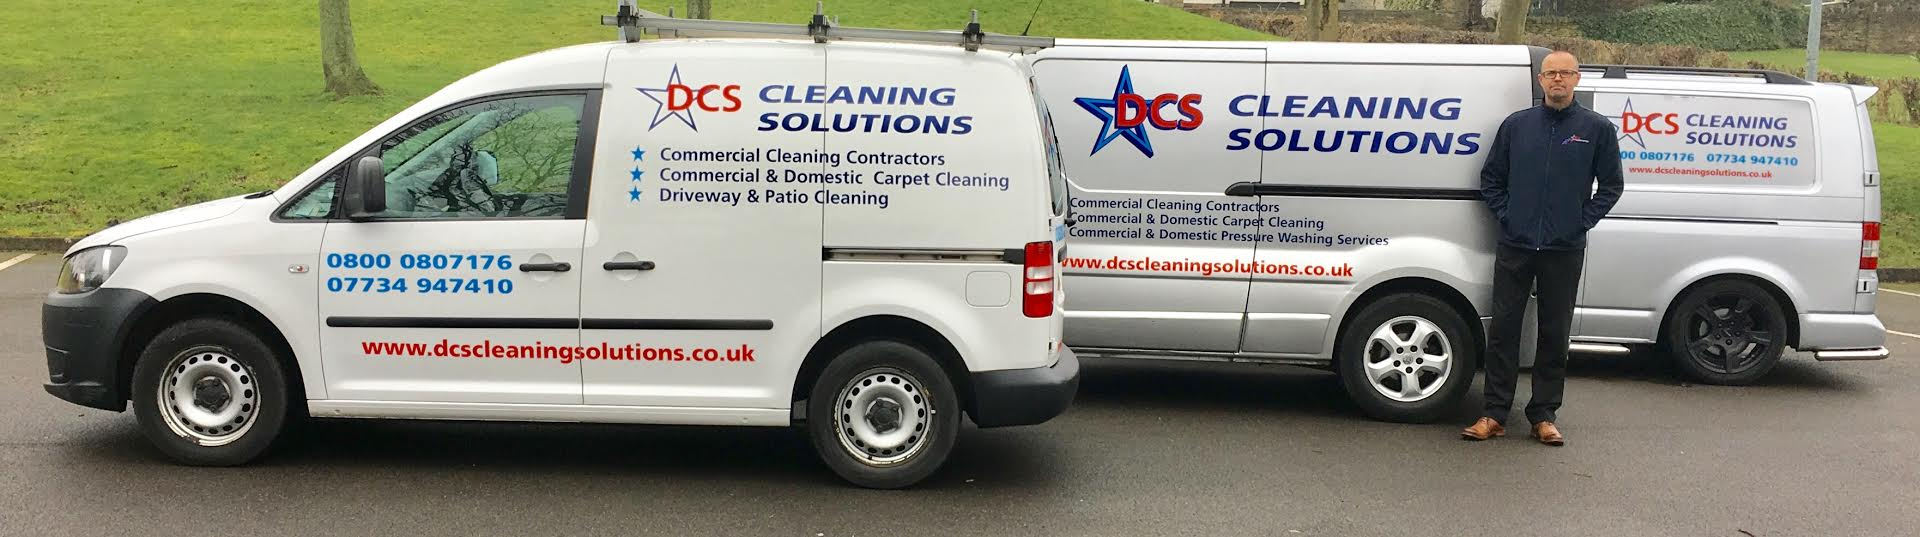 dcs cleaning solutions vehicles